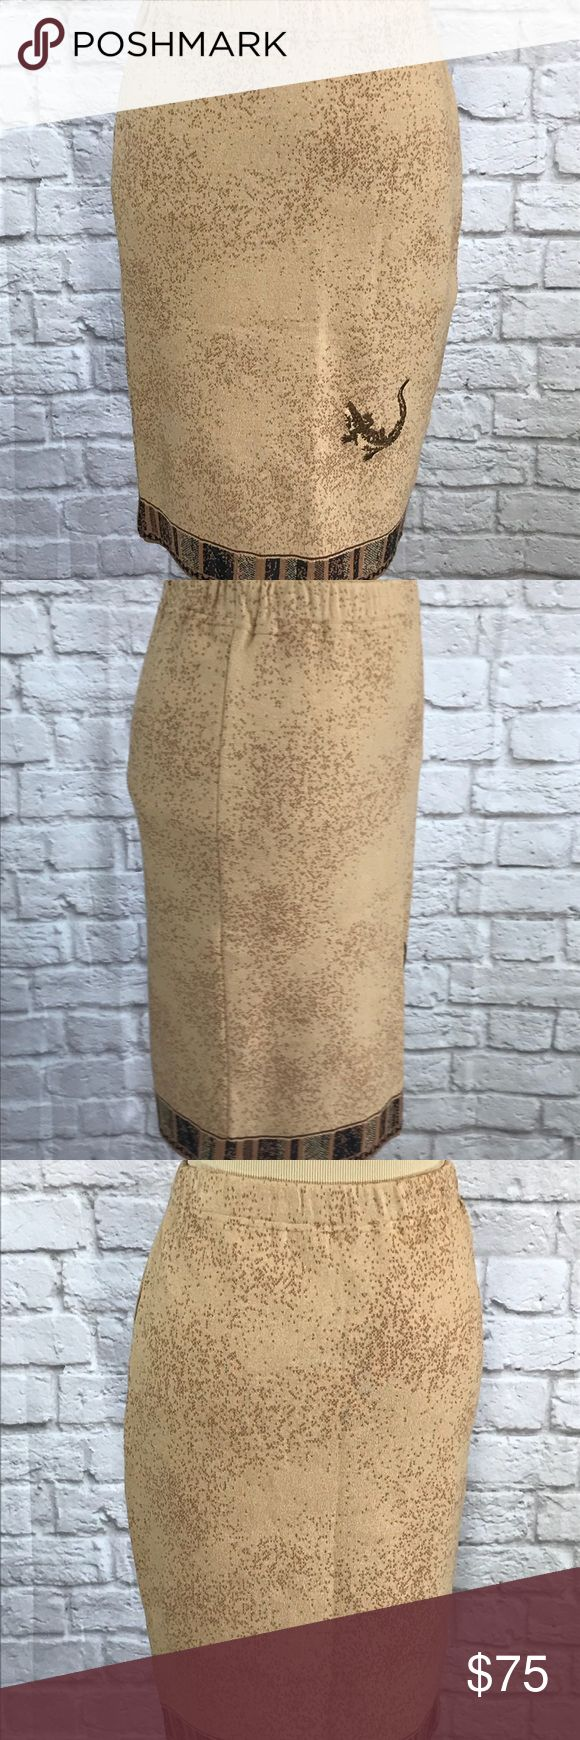 St. John Collection camel/brown pencil skirt 6 St. John Collection Knit pencil skirt size 6. The fabric is camel with a brown tweed. There is a crocodile embroidered on the front and a border on the skirt. The skirt is in perfect condition except for a repaired hole on the back of the waistband. Please see pictures for garment detail and measurements. Thanks for visiting my closet! St. John Collection Skirts Pencil